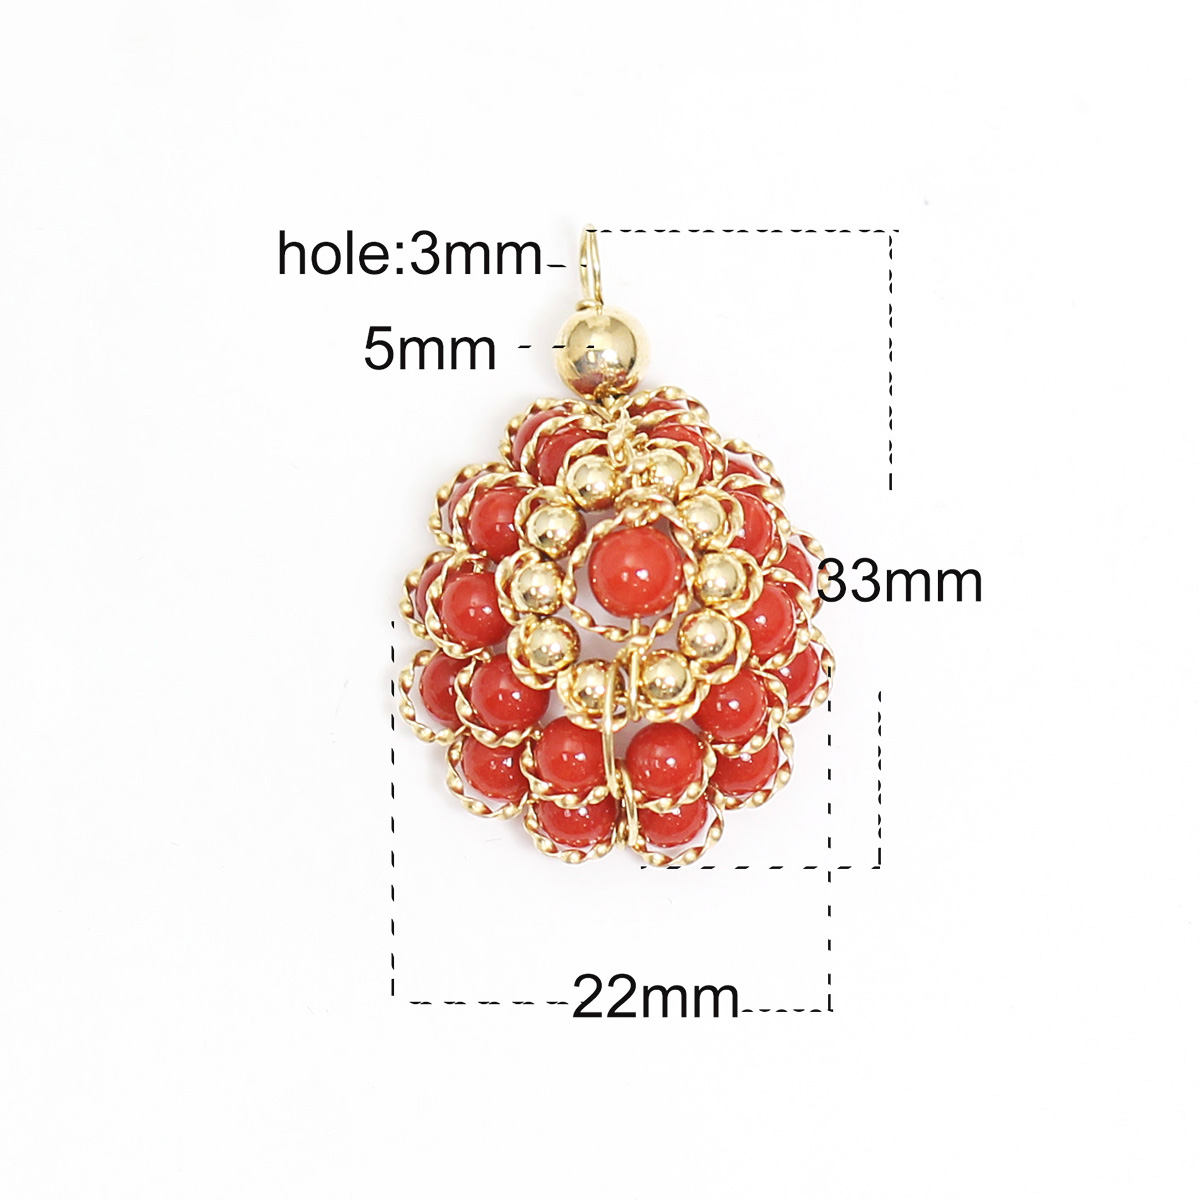 Beadsnice Gold Filled Red Coral Pendant Fine Jewelry for Necklace Making Wedding Gift 39770 in Pendants from Jewelry Accessories